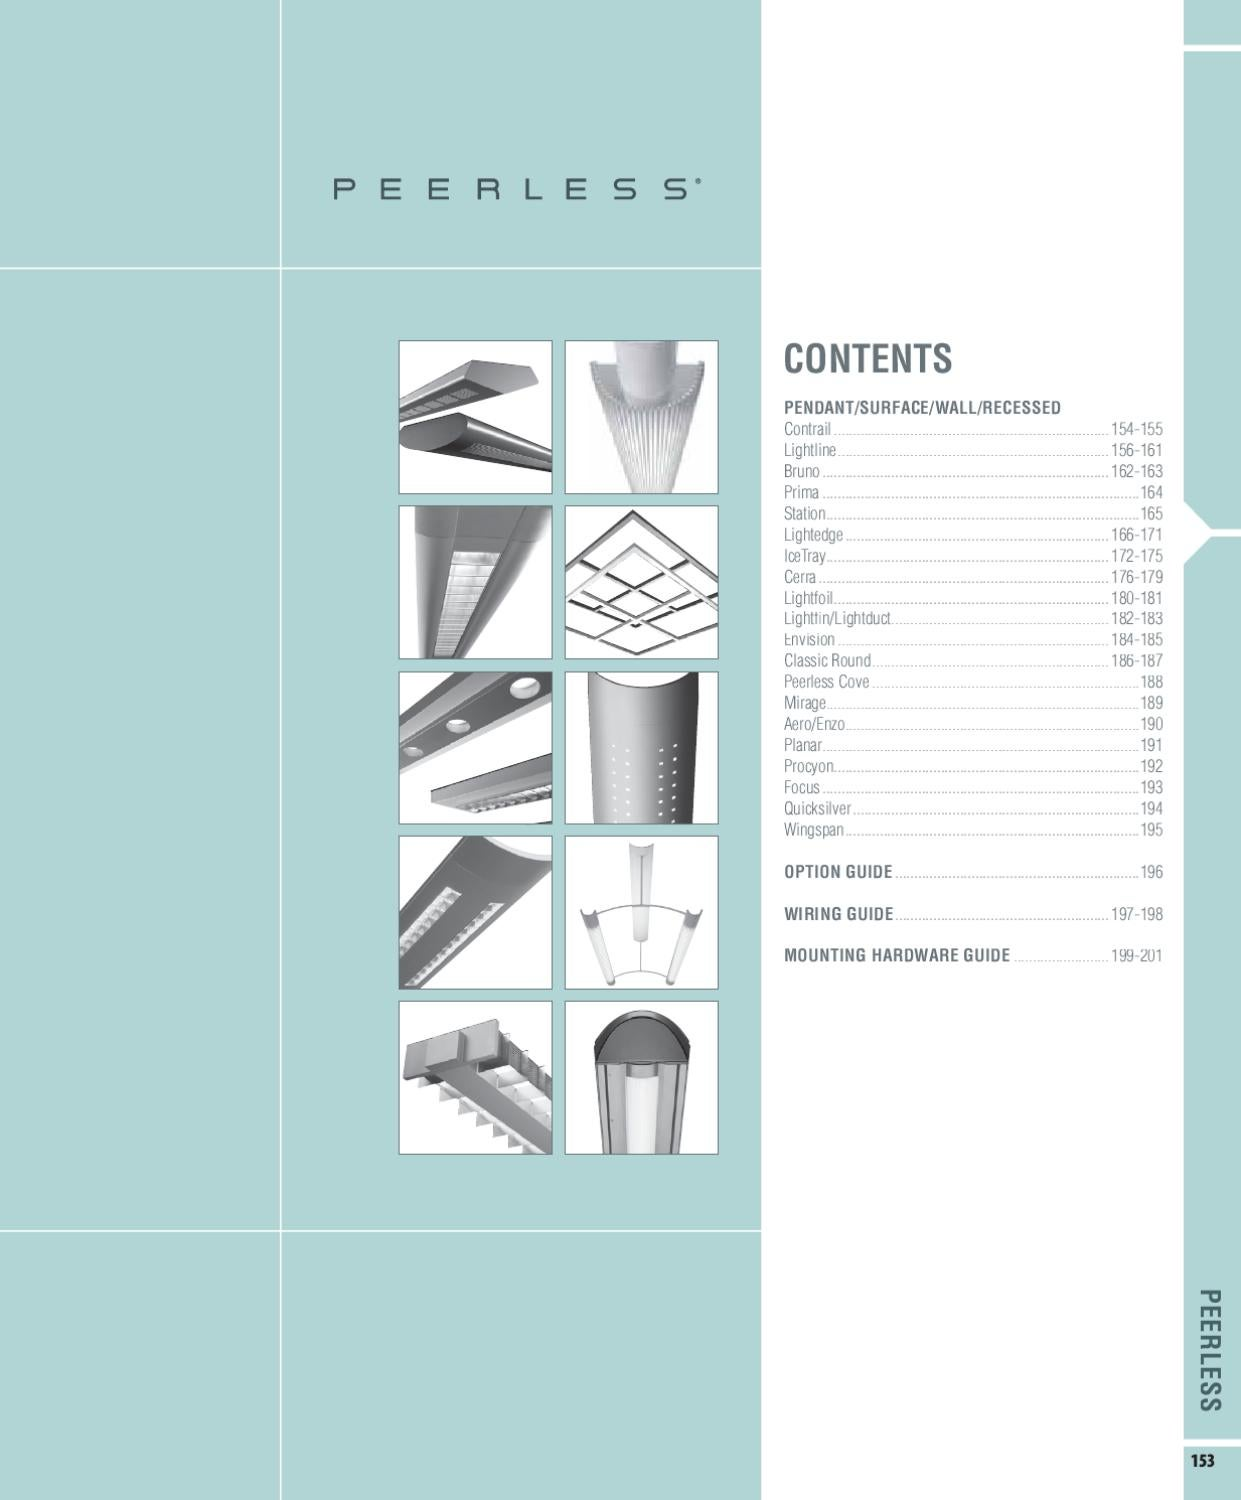 Peerless Lighting Catalog by Alcon Lighting - issuu